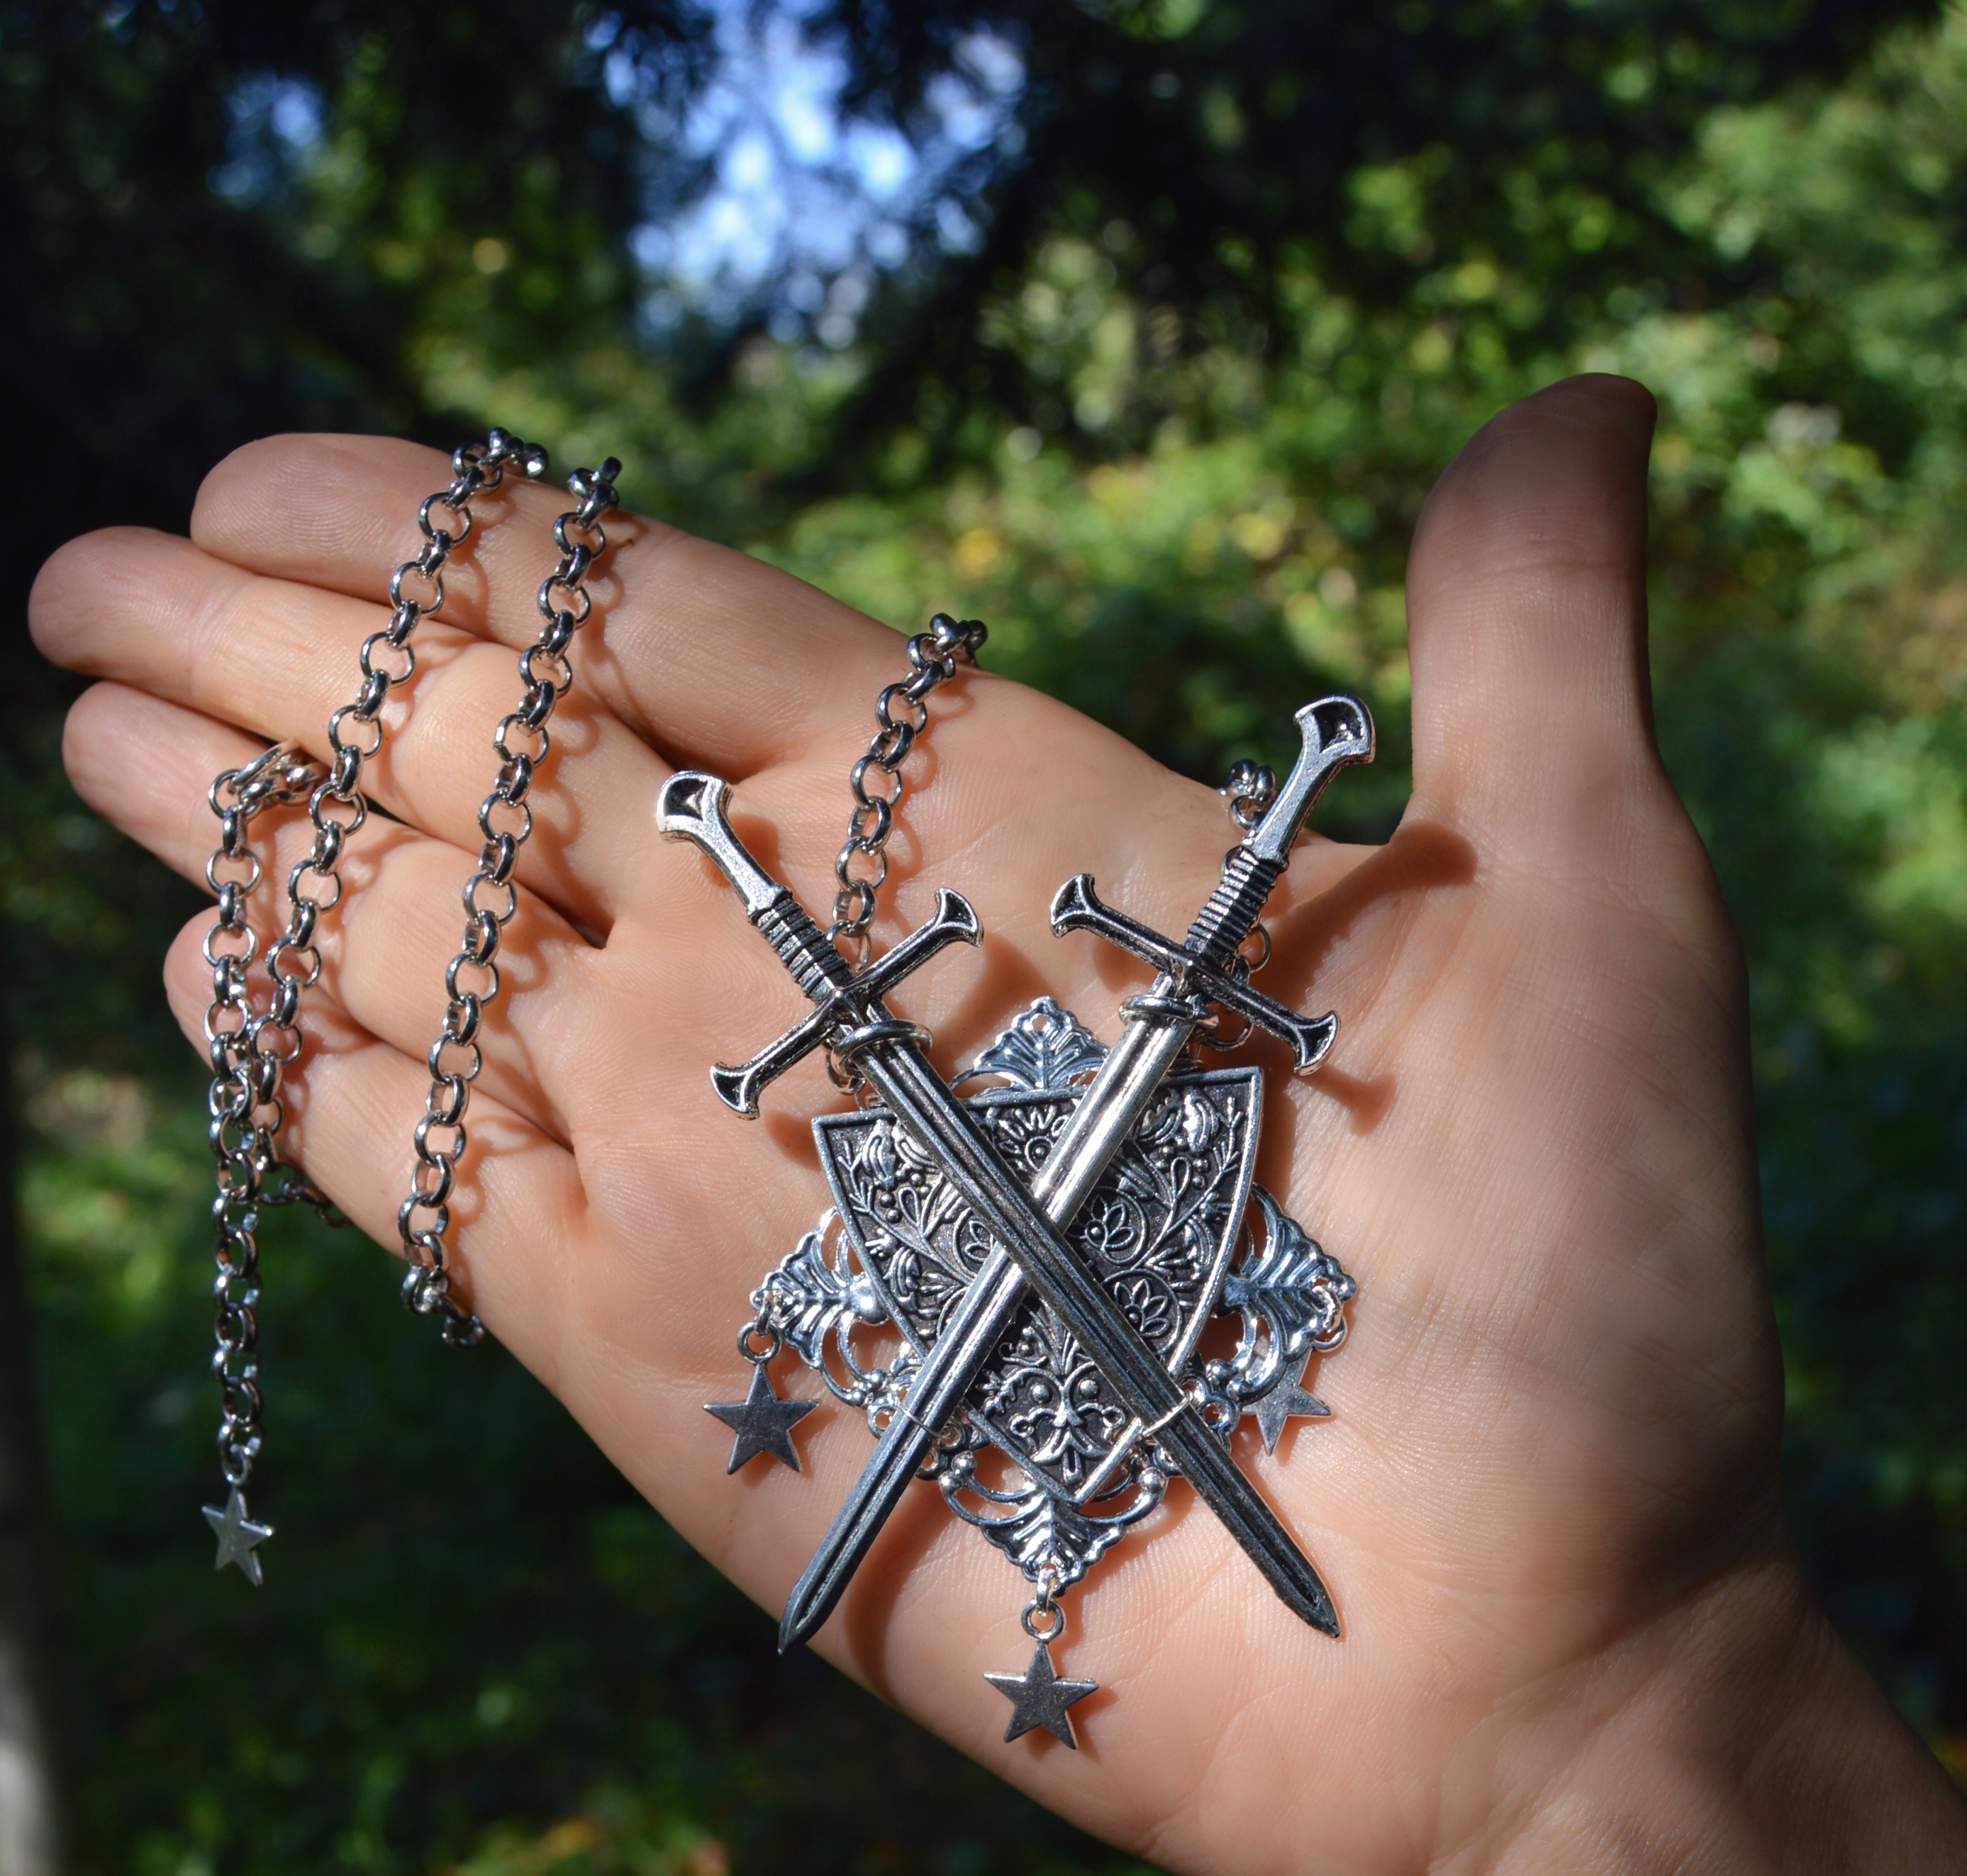 Gothic sword necklace strega fashion medieval jewelry knight coat of arms pendant by Herisson Rose